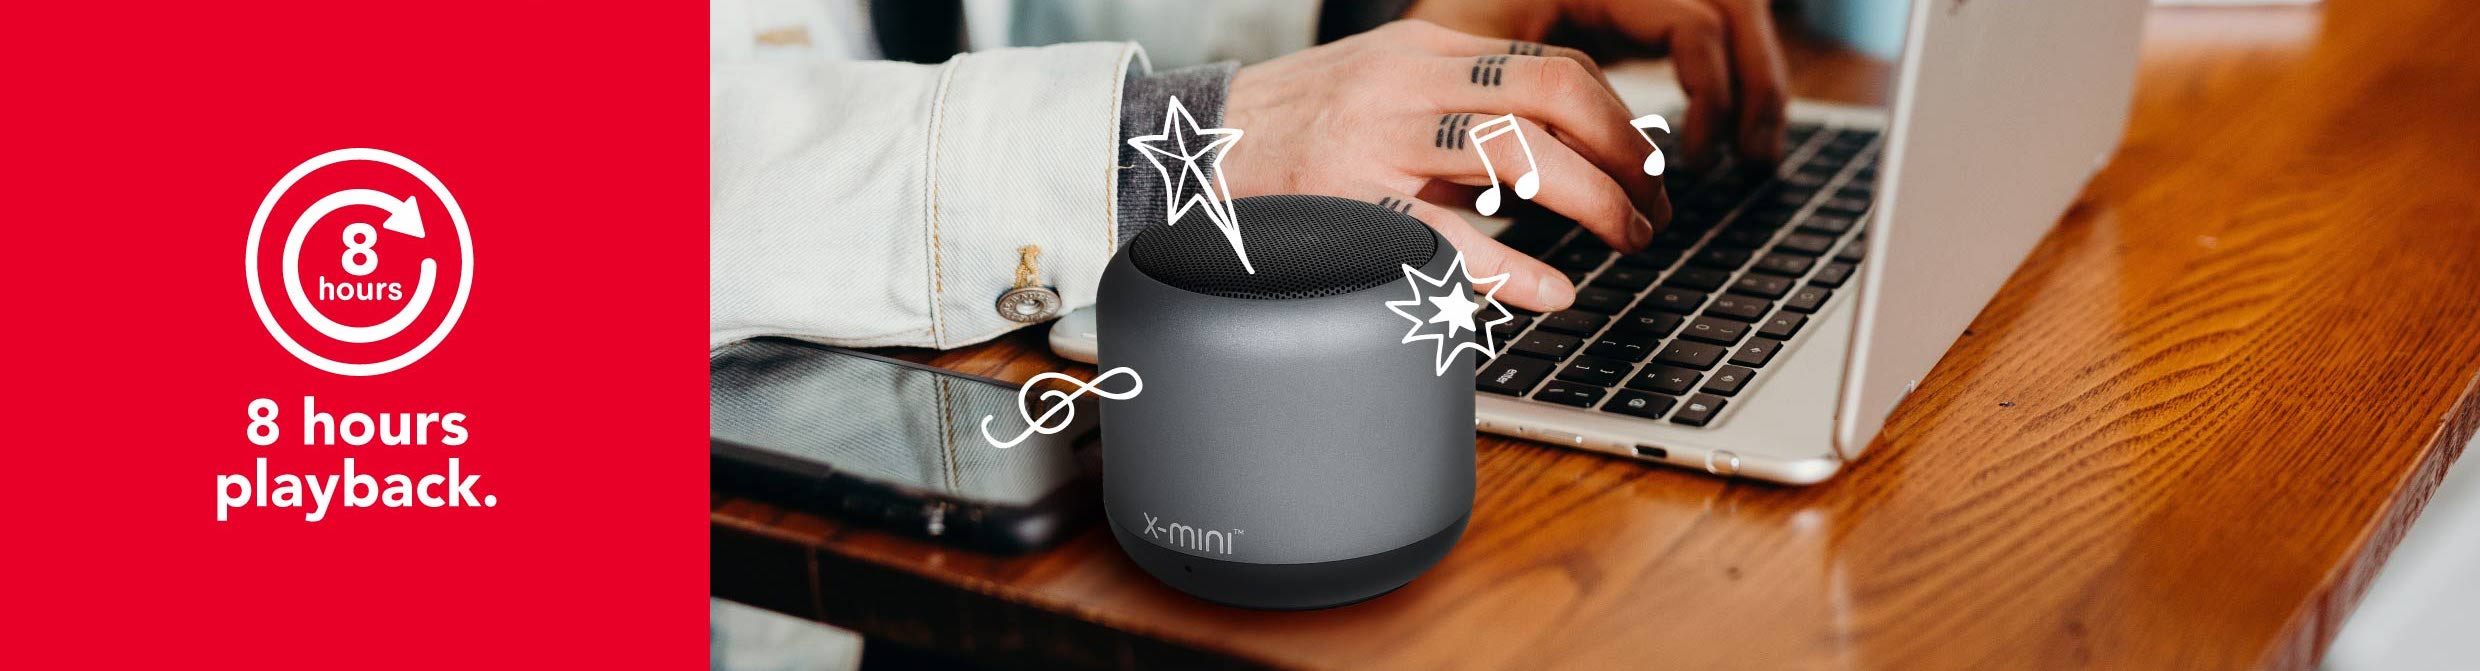 X-mini-Kai-X2-True-Wireless-Portable-Bluetooth-Speaker-8-hours-playback